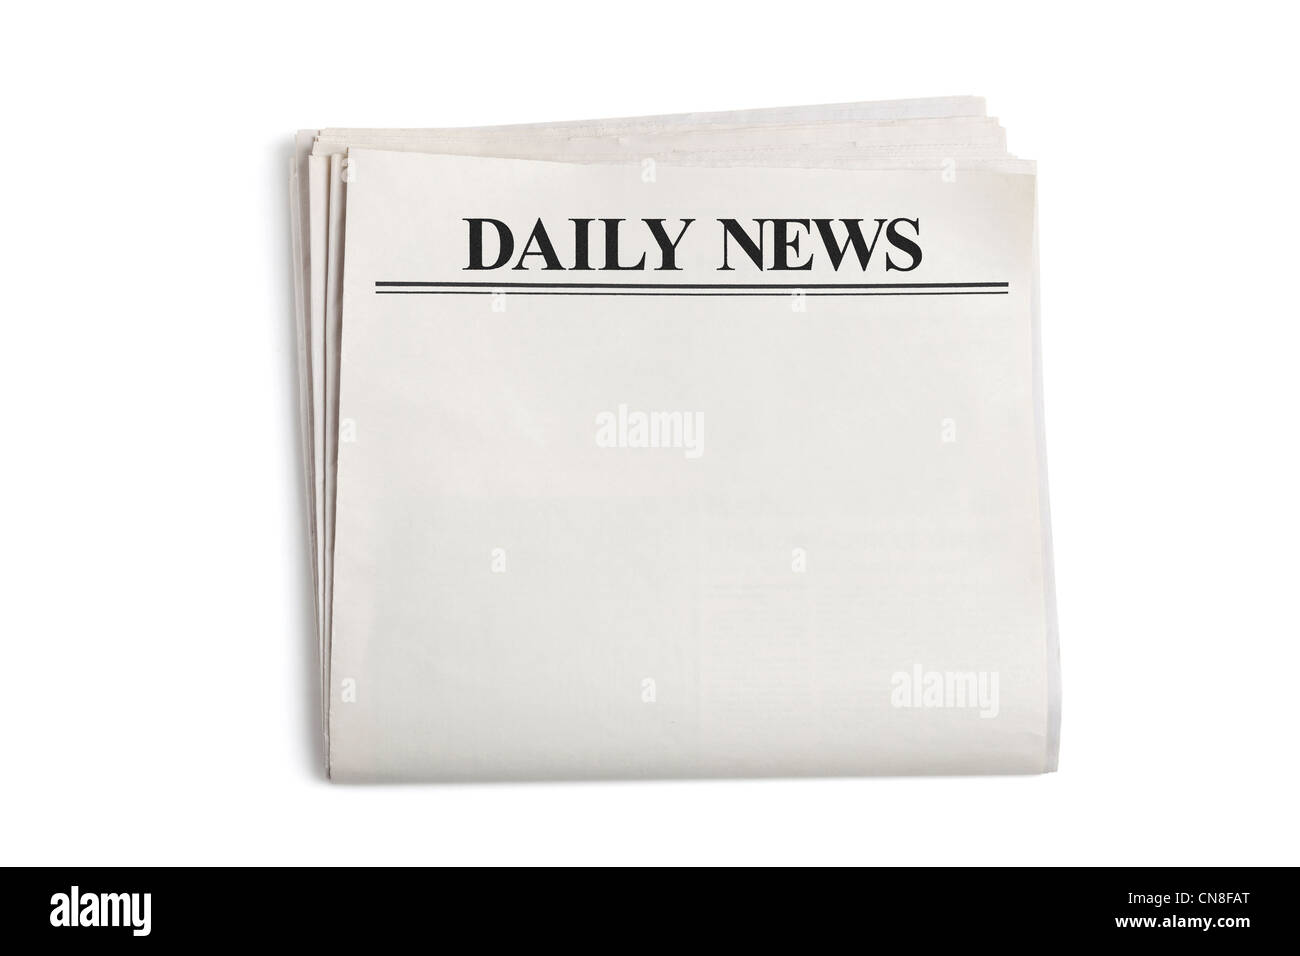 Daily News Blank Newspaper With White Background Stock